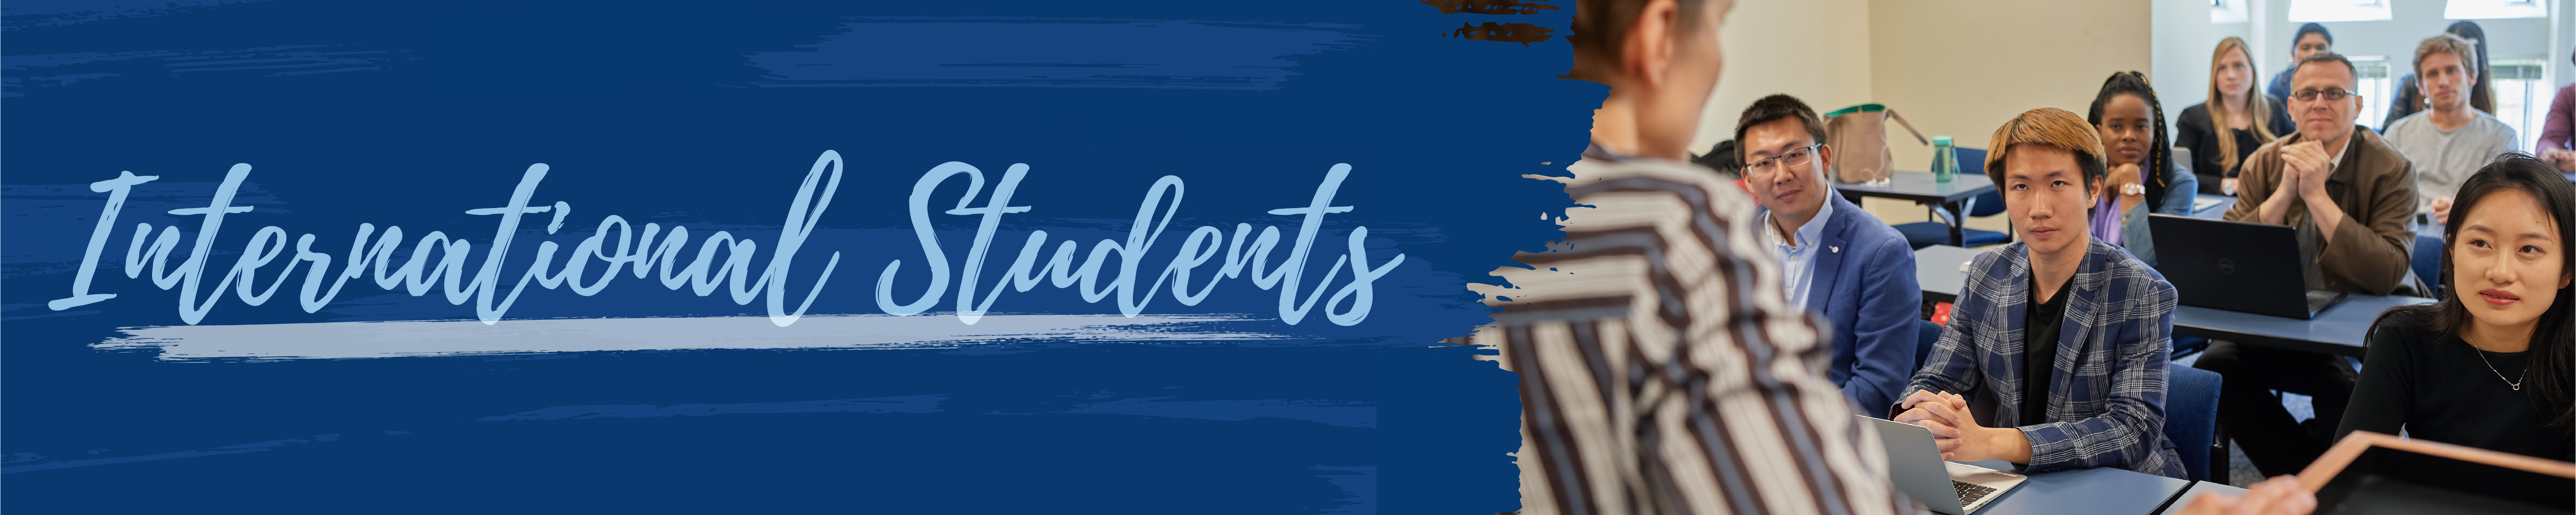 International Students Banner